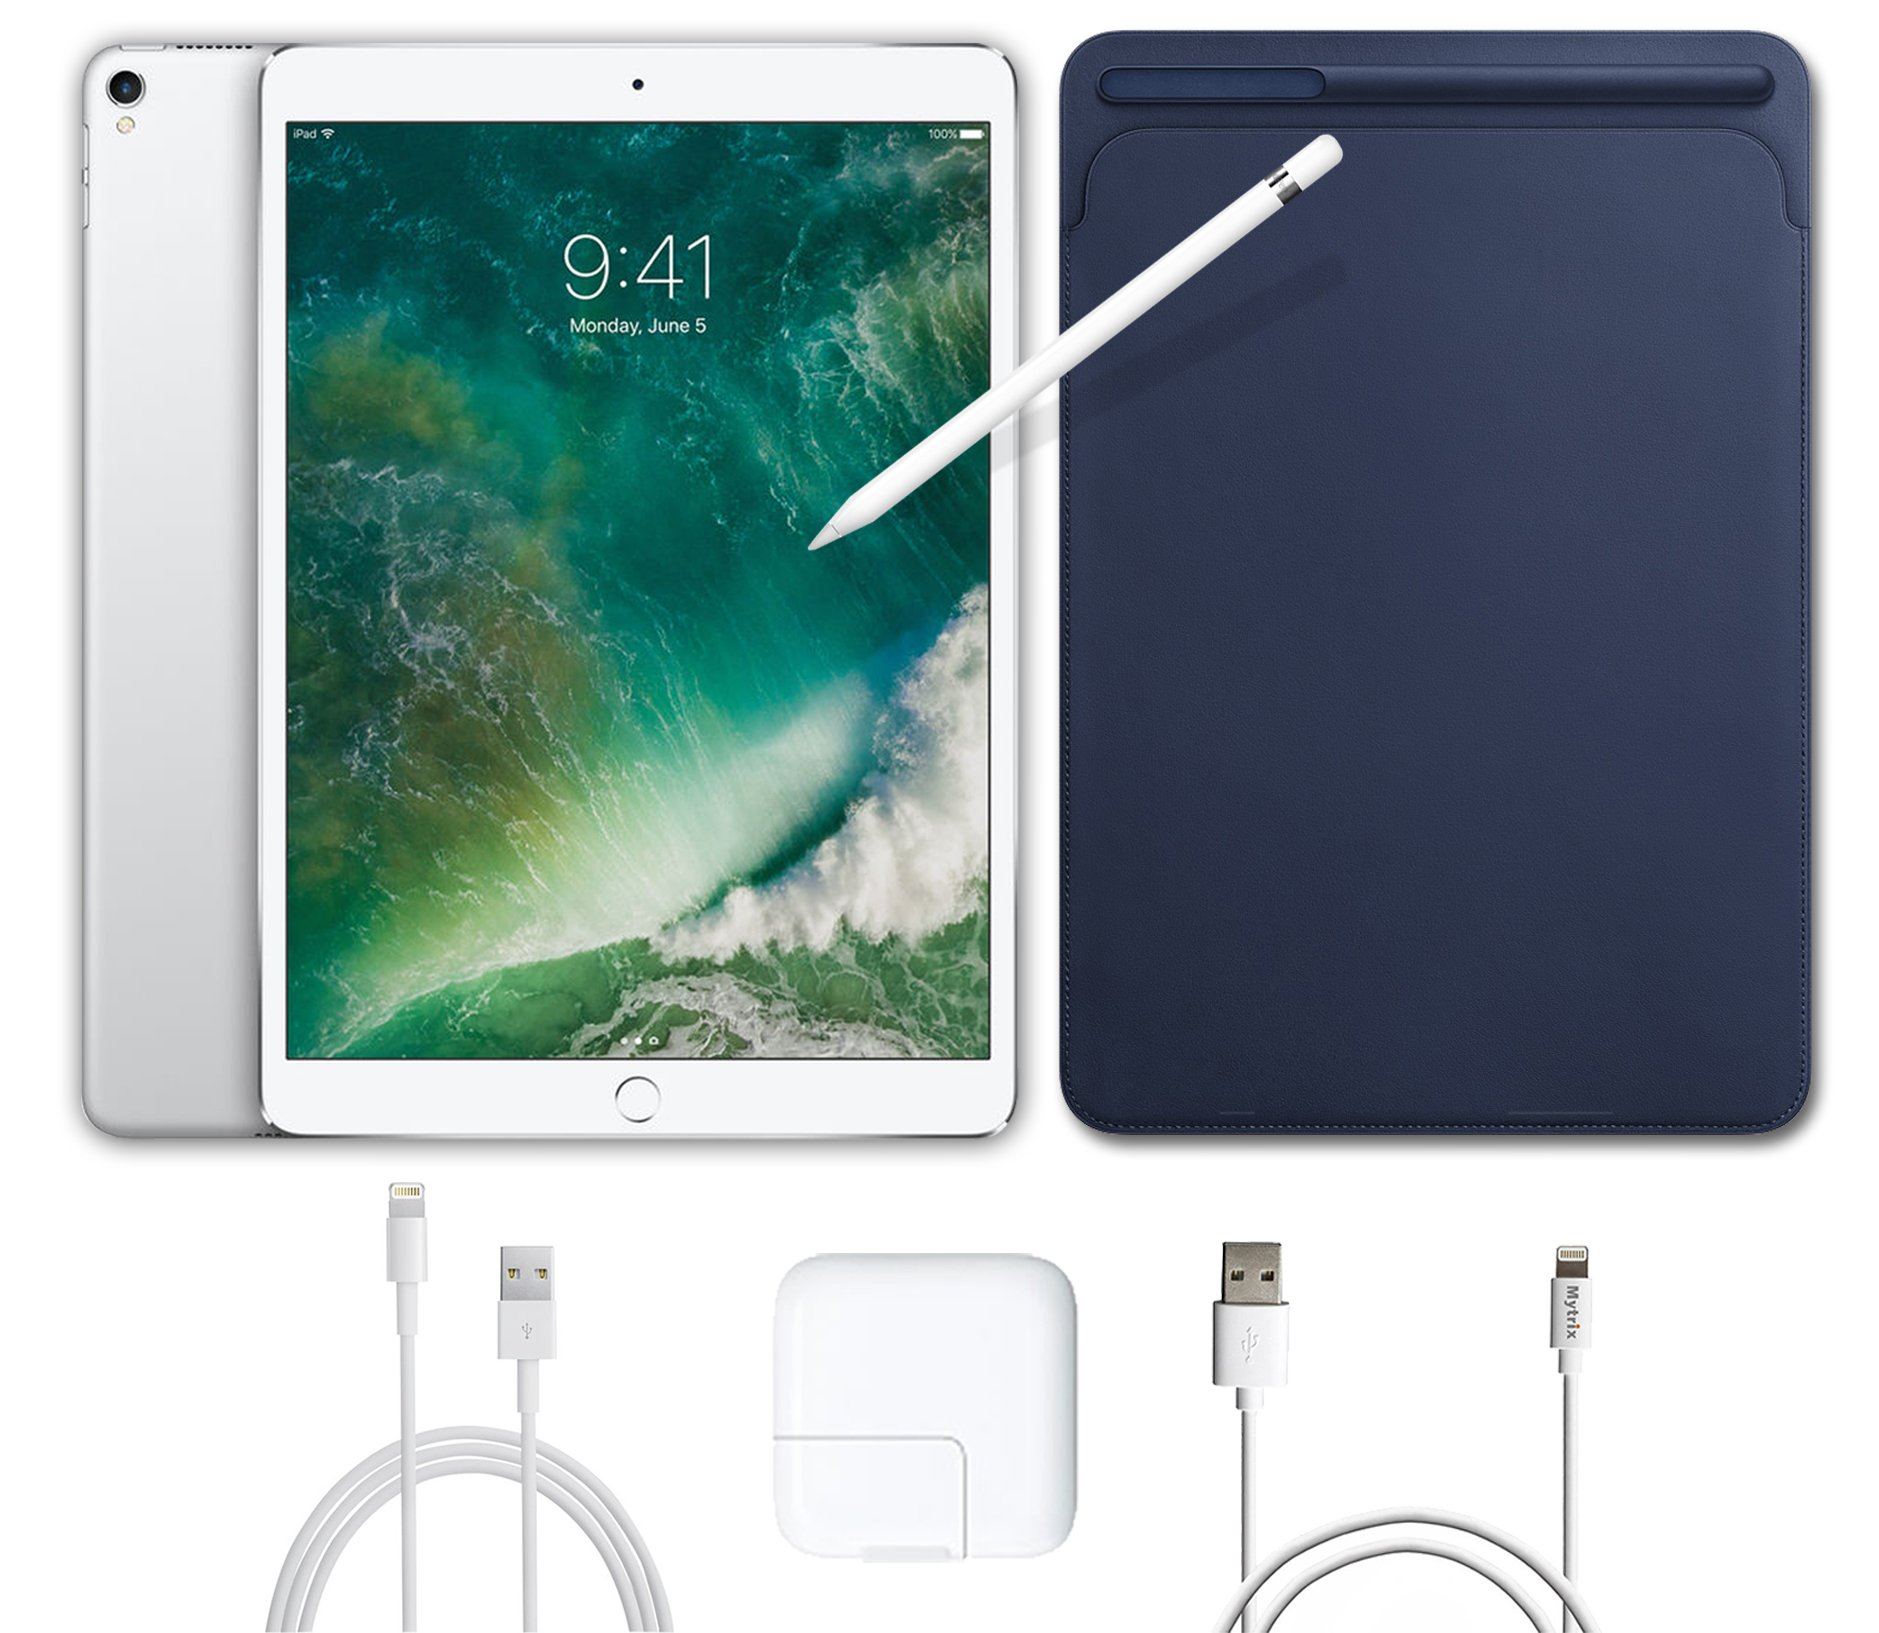 2017 New IPad Pro Bundle (5 Items): Apple 10.5 inch iPad Pro with Wi-Fi 512 GB Silver, Leather Sleeve Midnight Blue, Apple Pencil, Mytrix USB Apple Lightning Cable and All-in-One Travel Charger by uShopMall